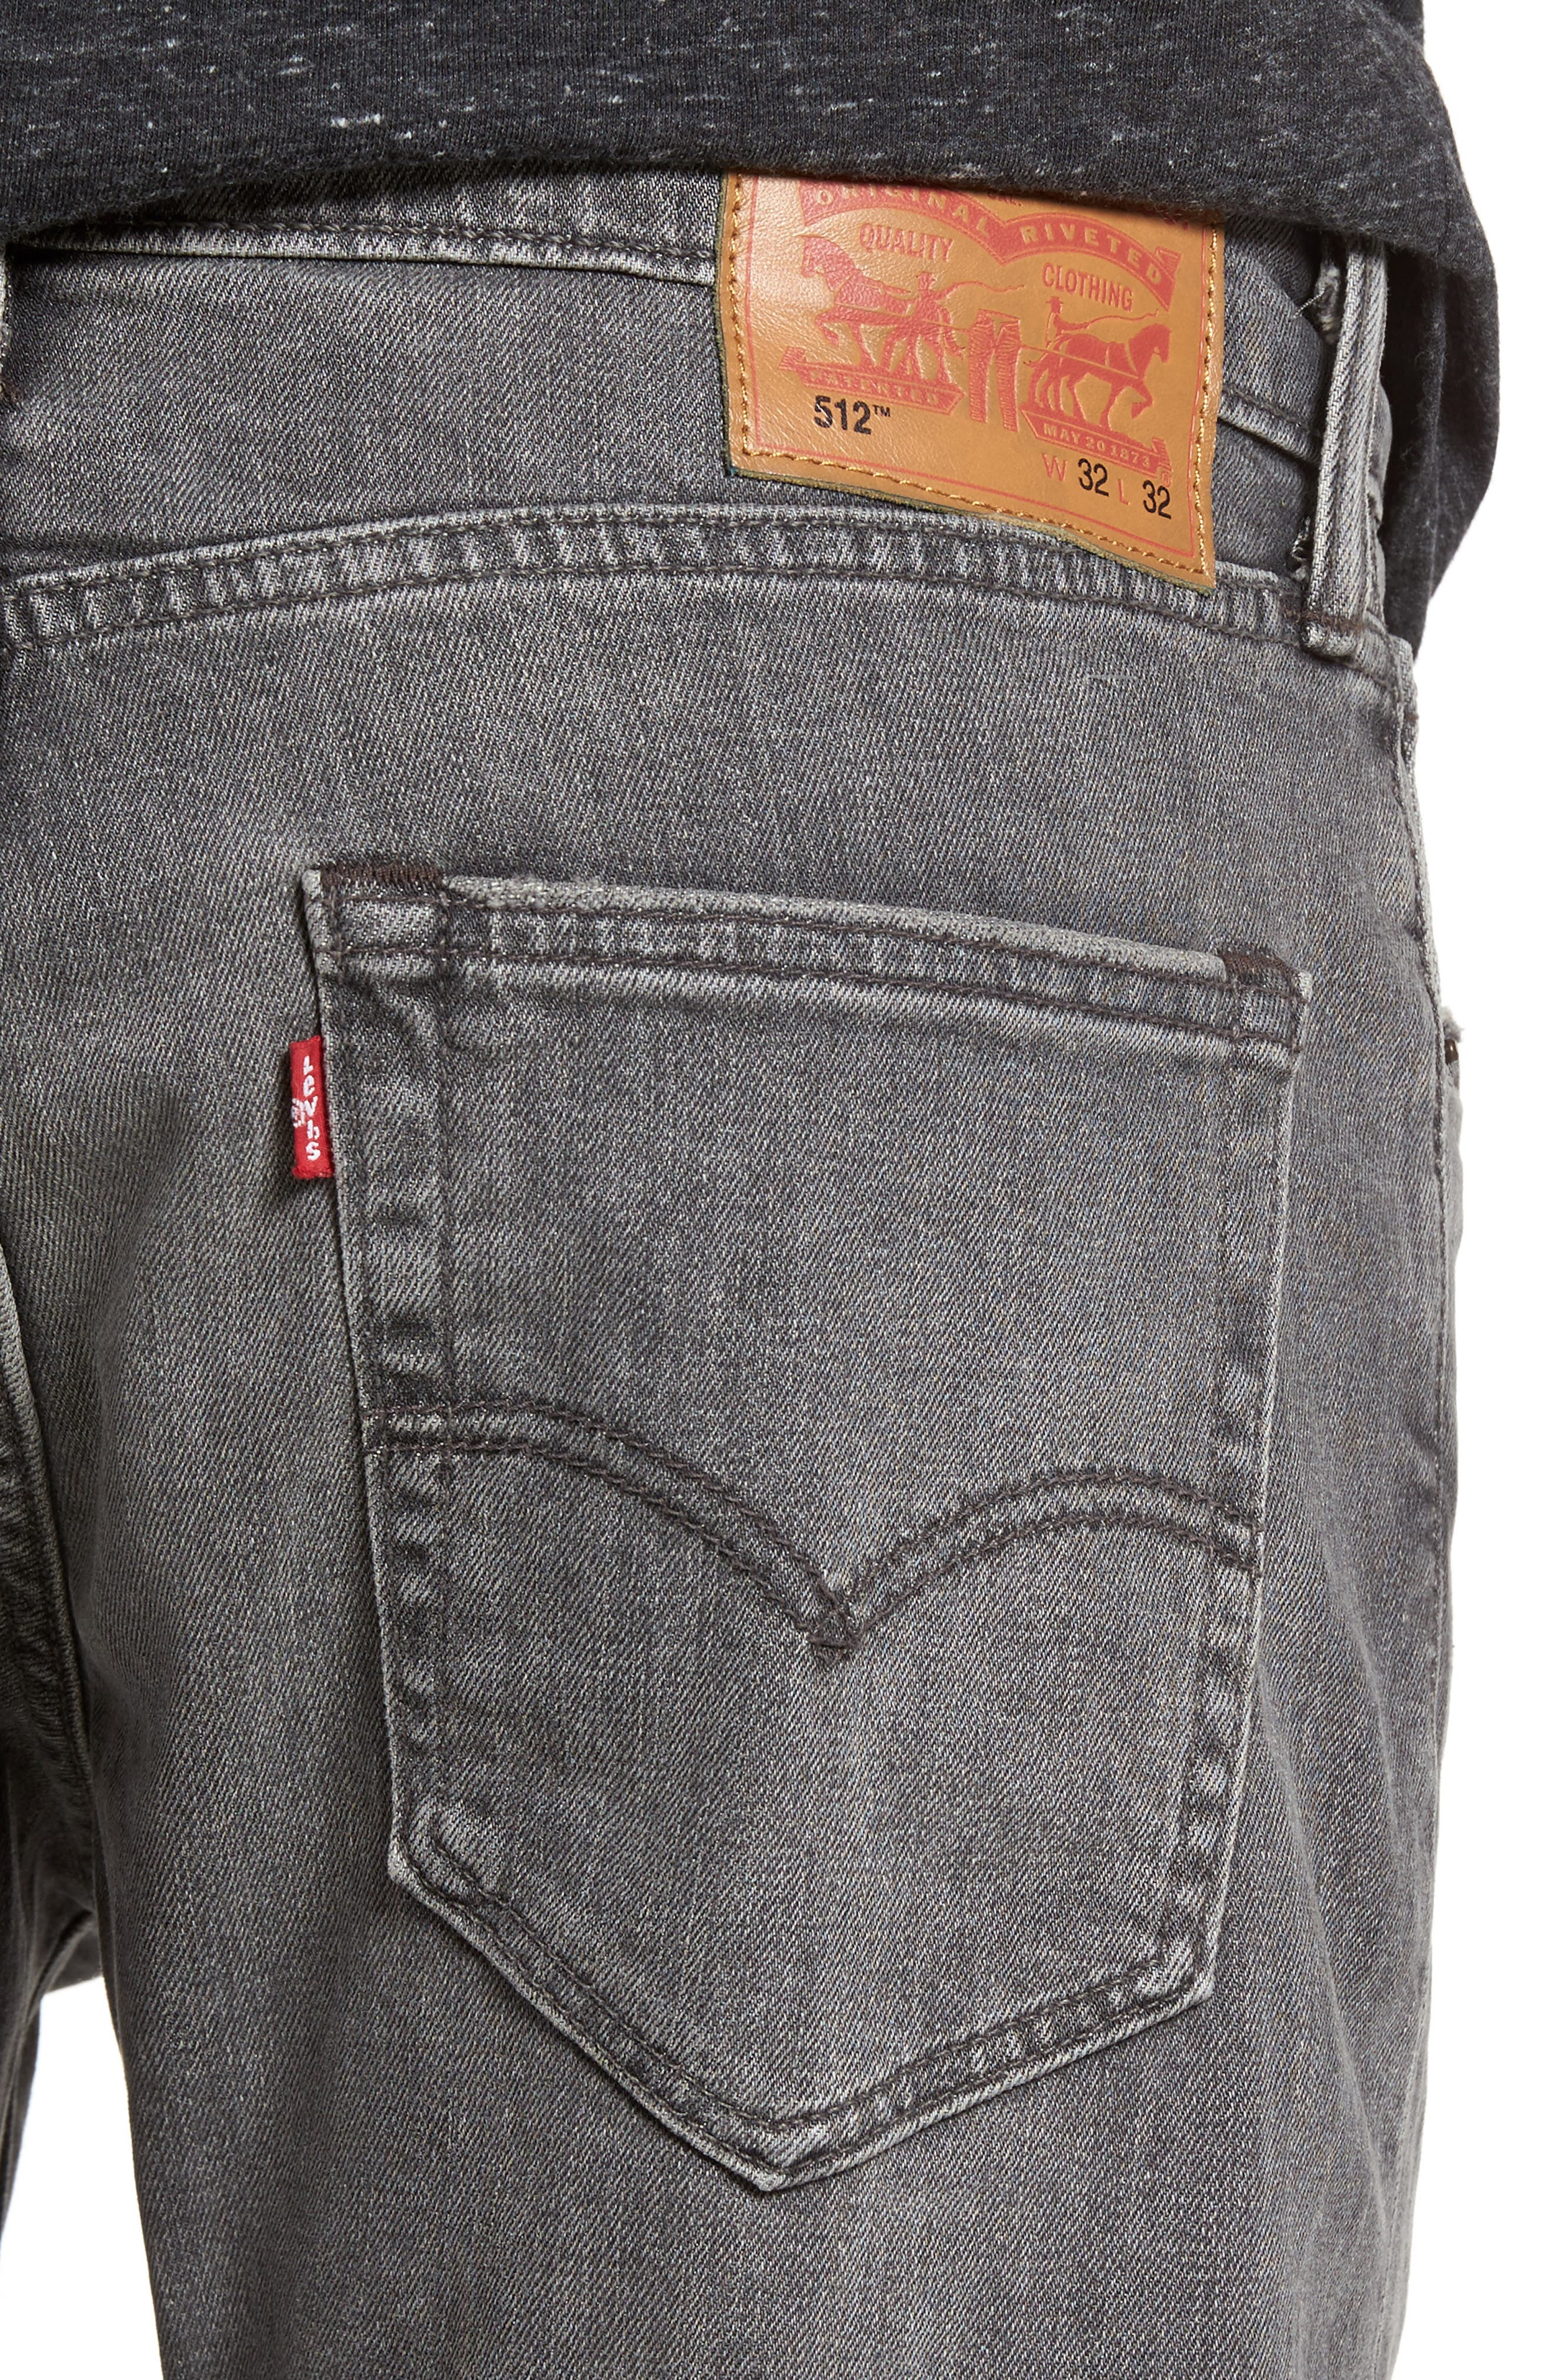 512<sup>™</sup> Slouchy Skinny Fit Jeans,                             Alternate thumbnail 4, color,                             001